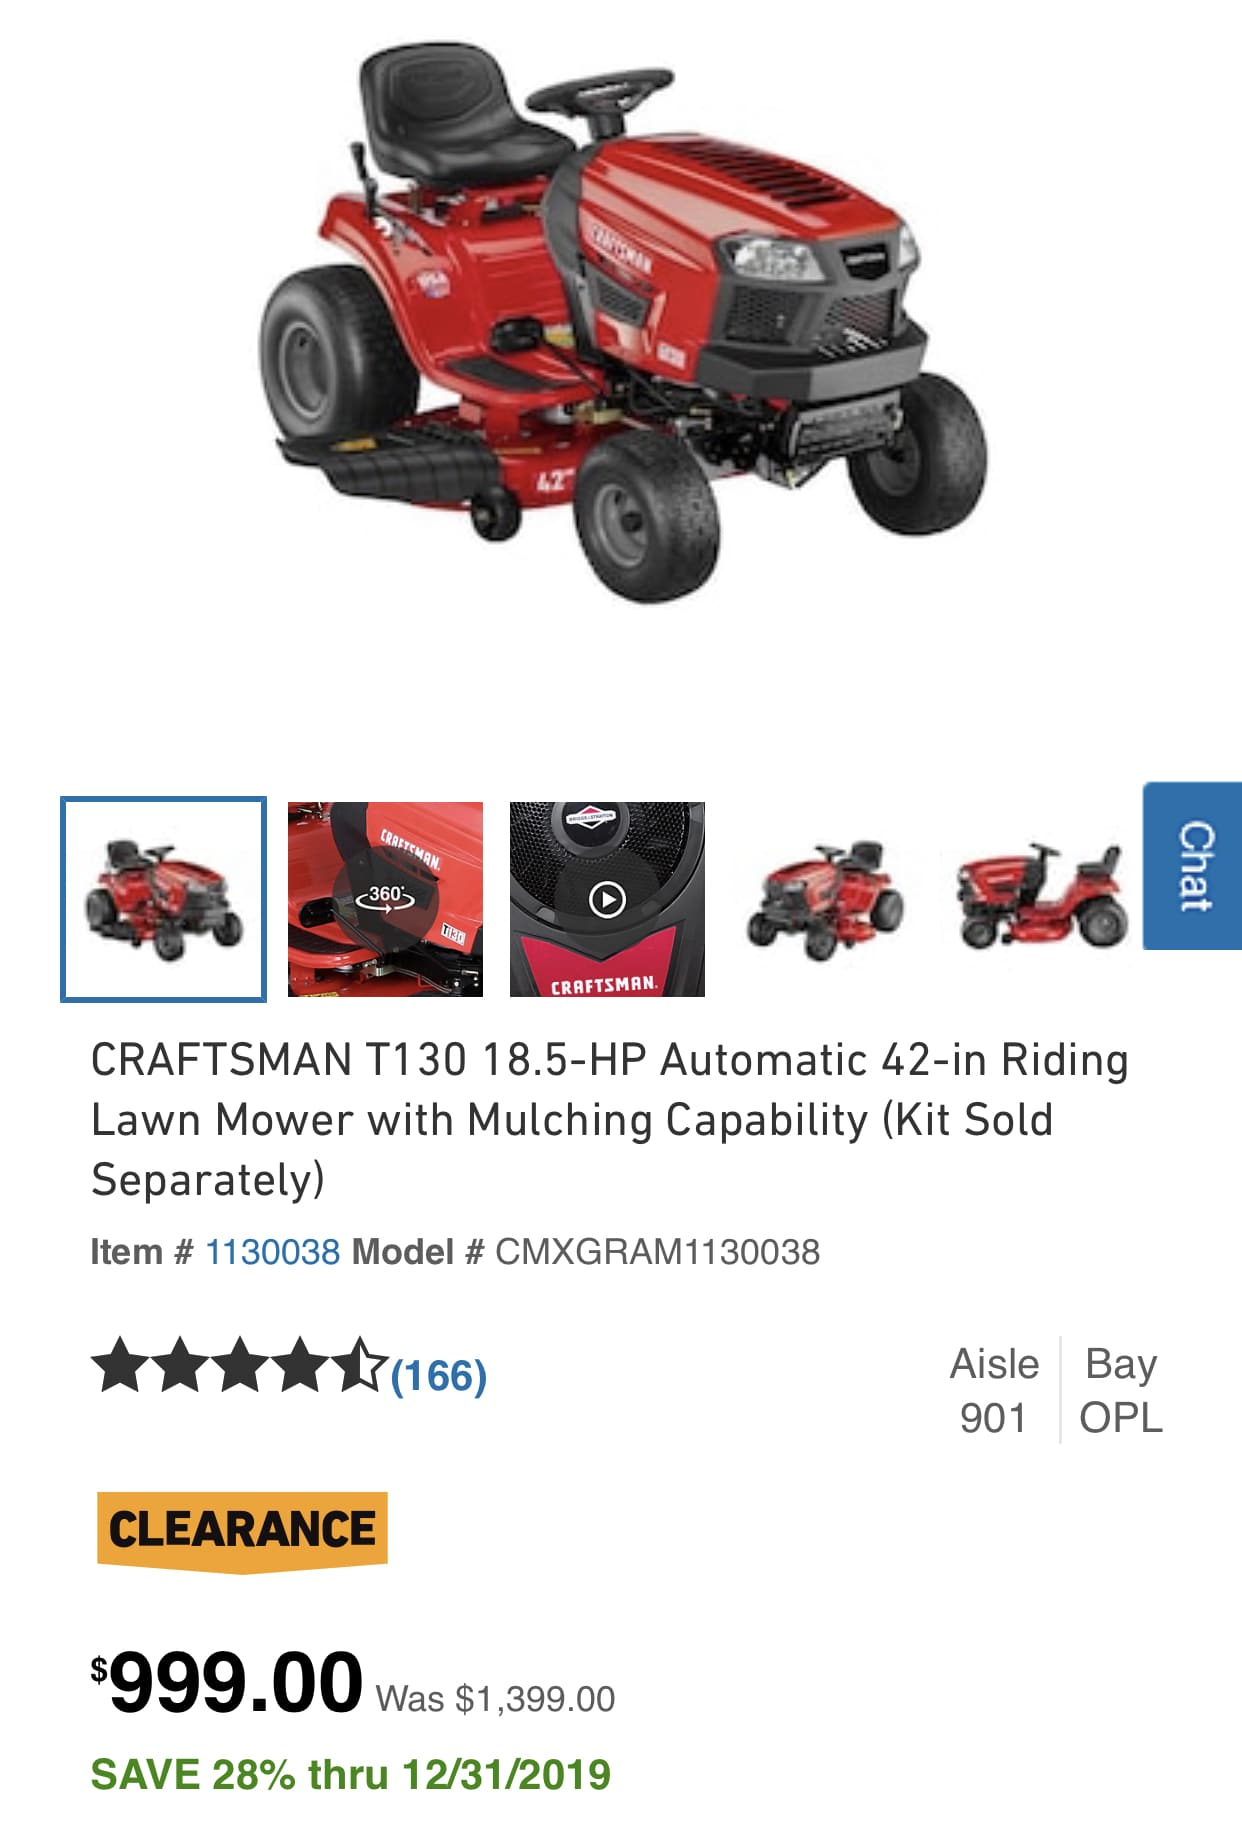 YMMV - CRAFTSMAN T130 18.5-HP Automatic 42-in Riding Lawn Mower with Mulching Capability $999